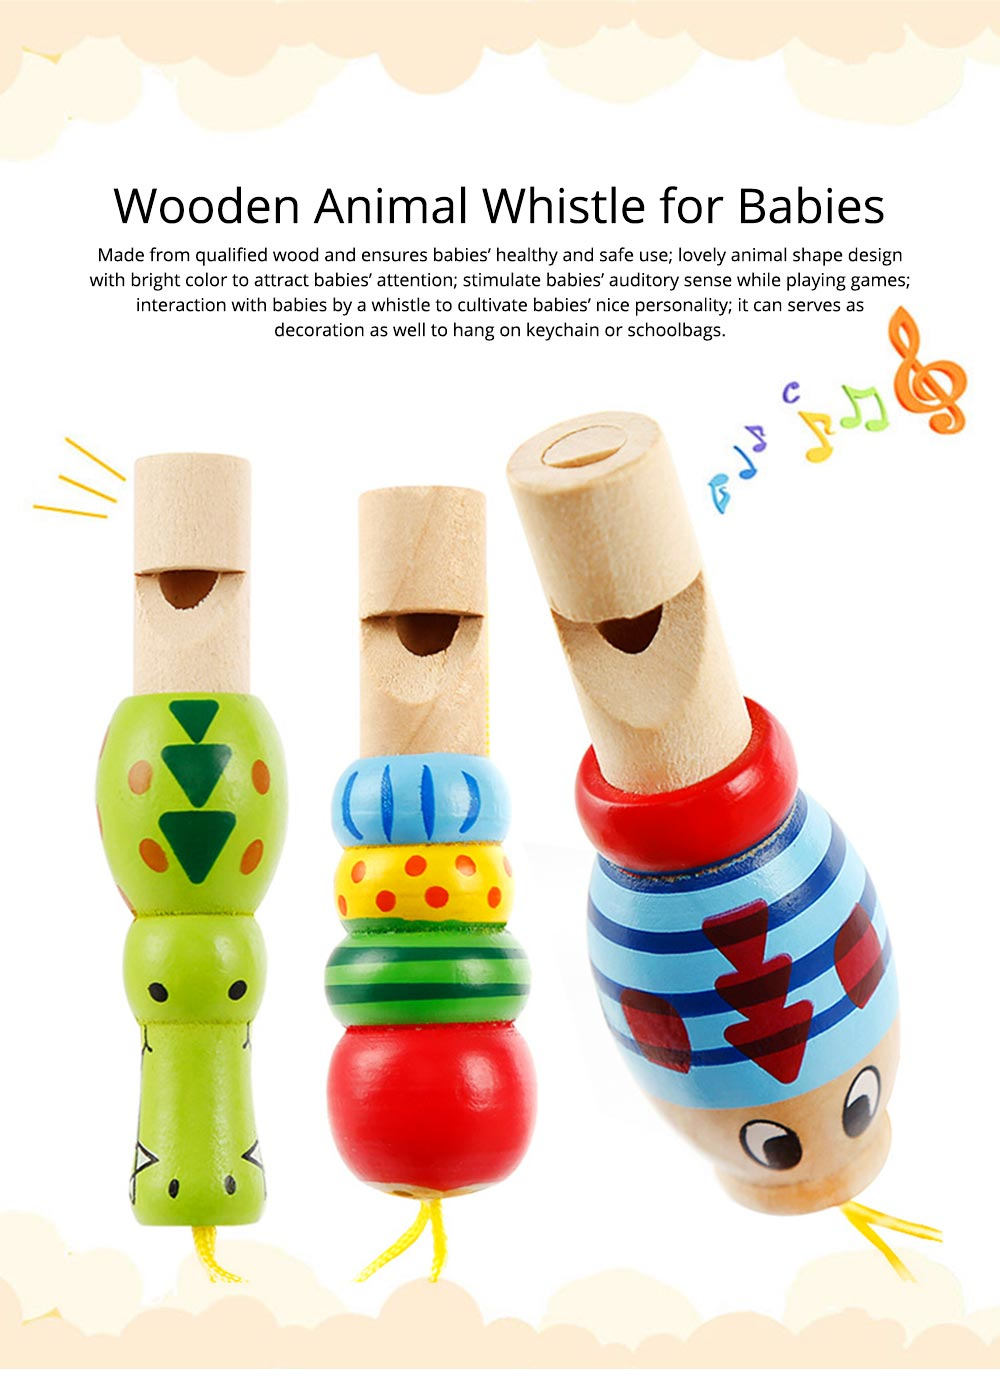 Wooden Animal-shape Whistle for Babies, Early Educational Toy for Children's Use, Musical Cultivation Tool Whistle with Bright Color 0